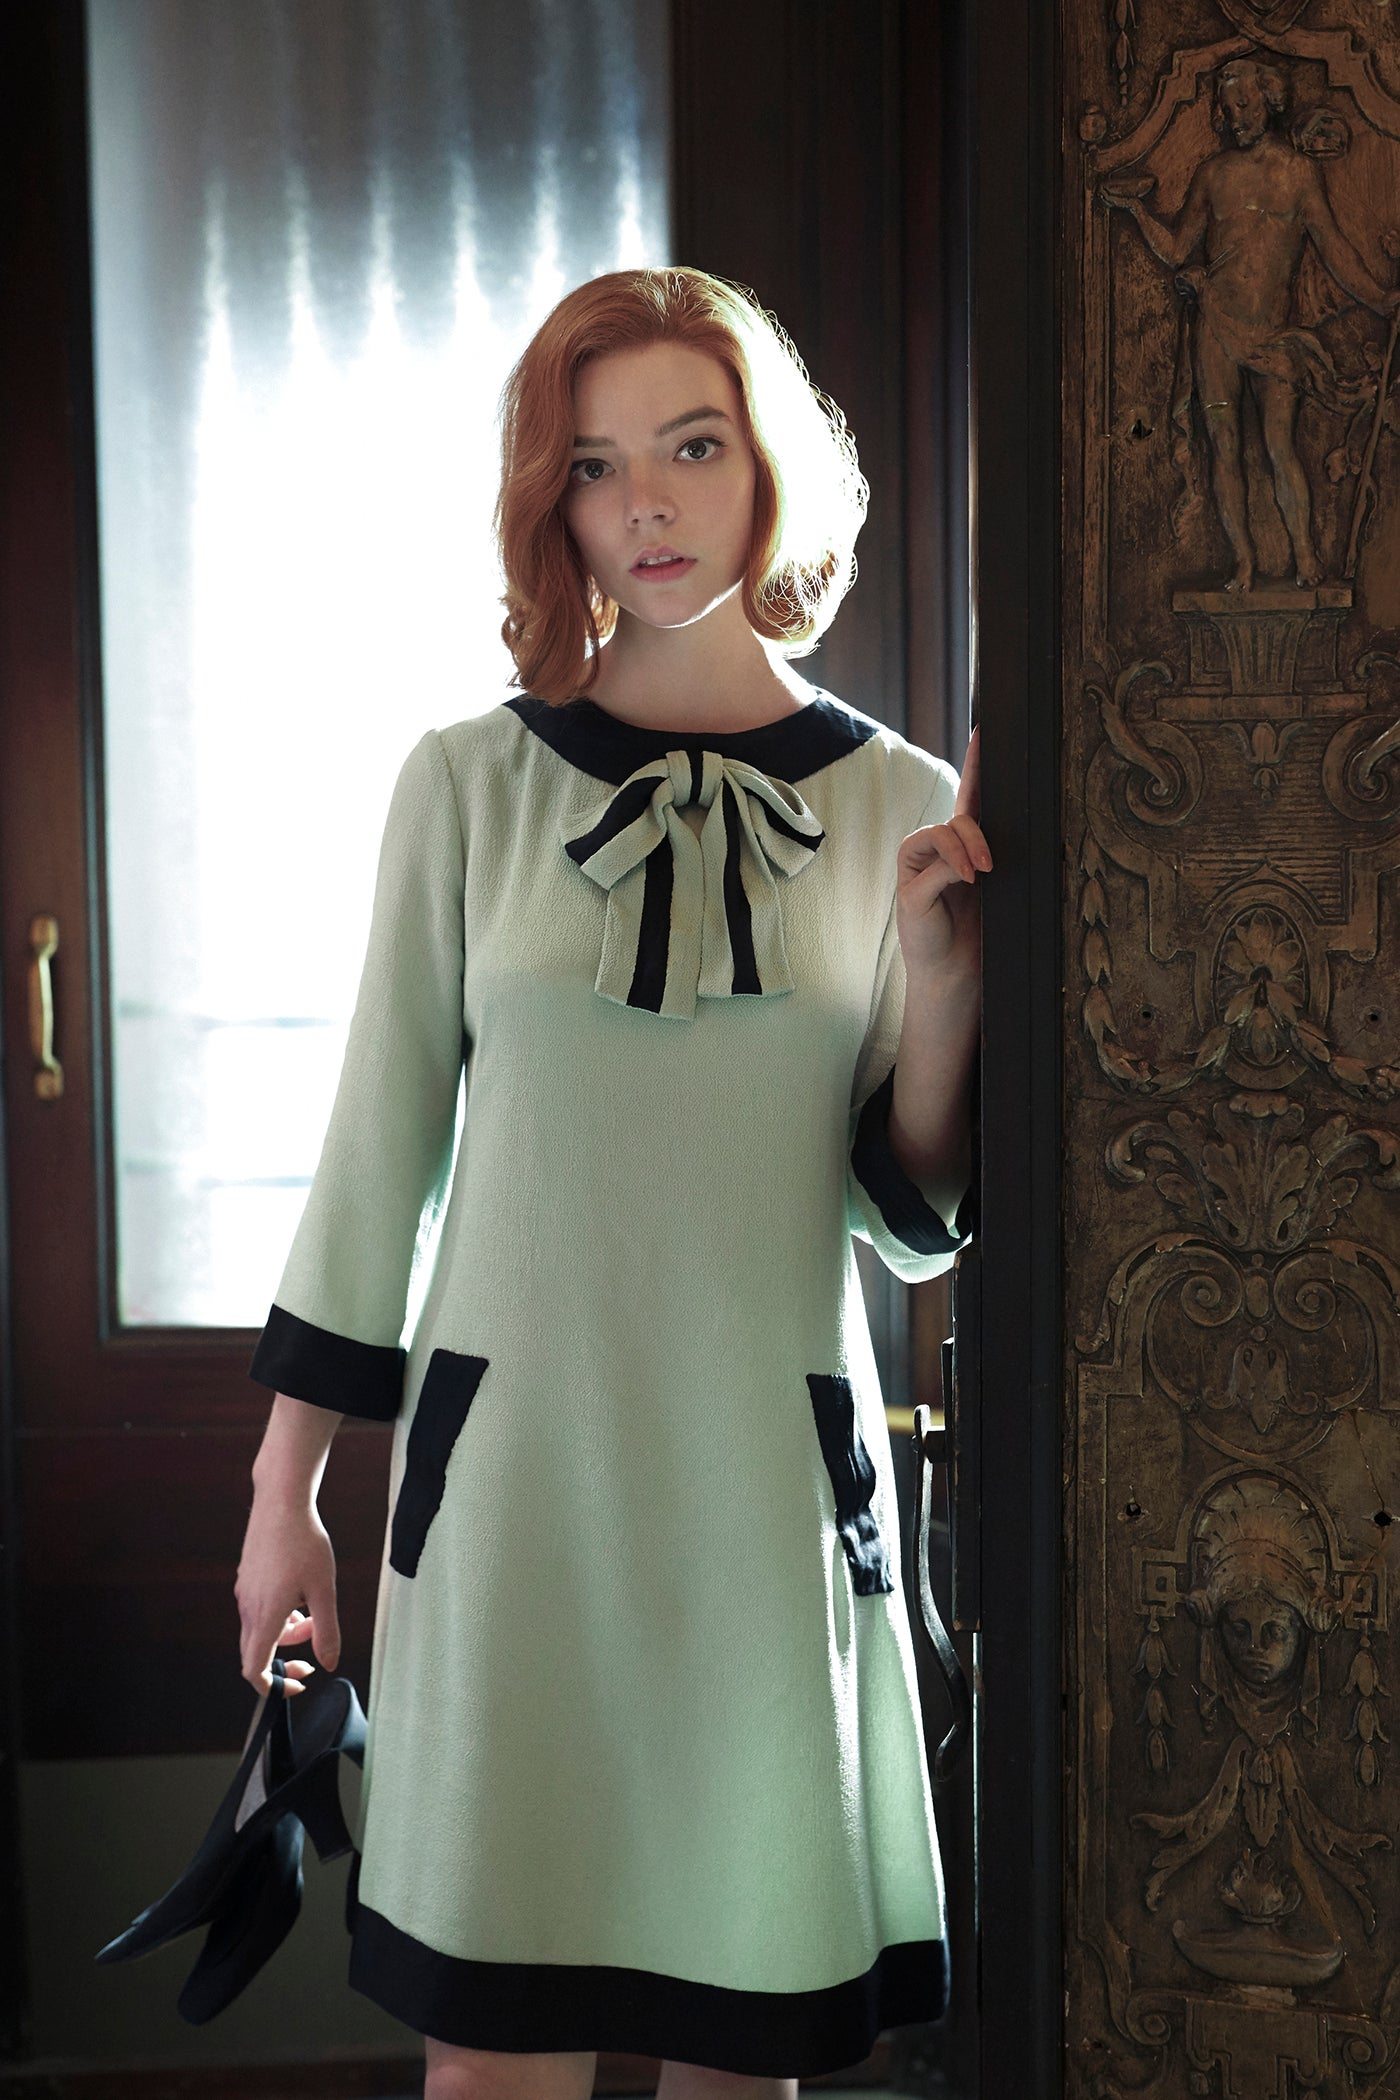 The mint and black bow dress is made from creped viscose, jumping with movement to support her disorderly state.